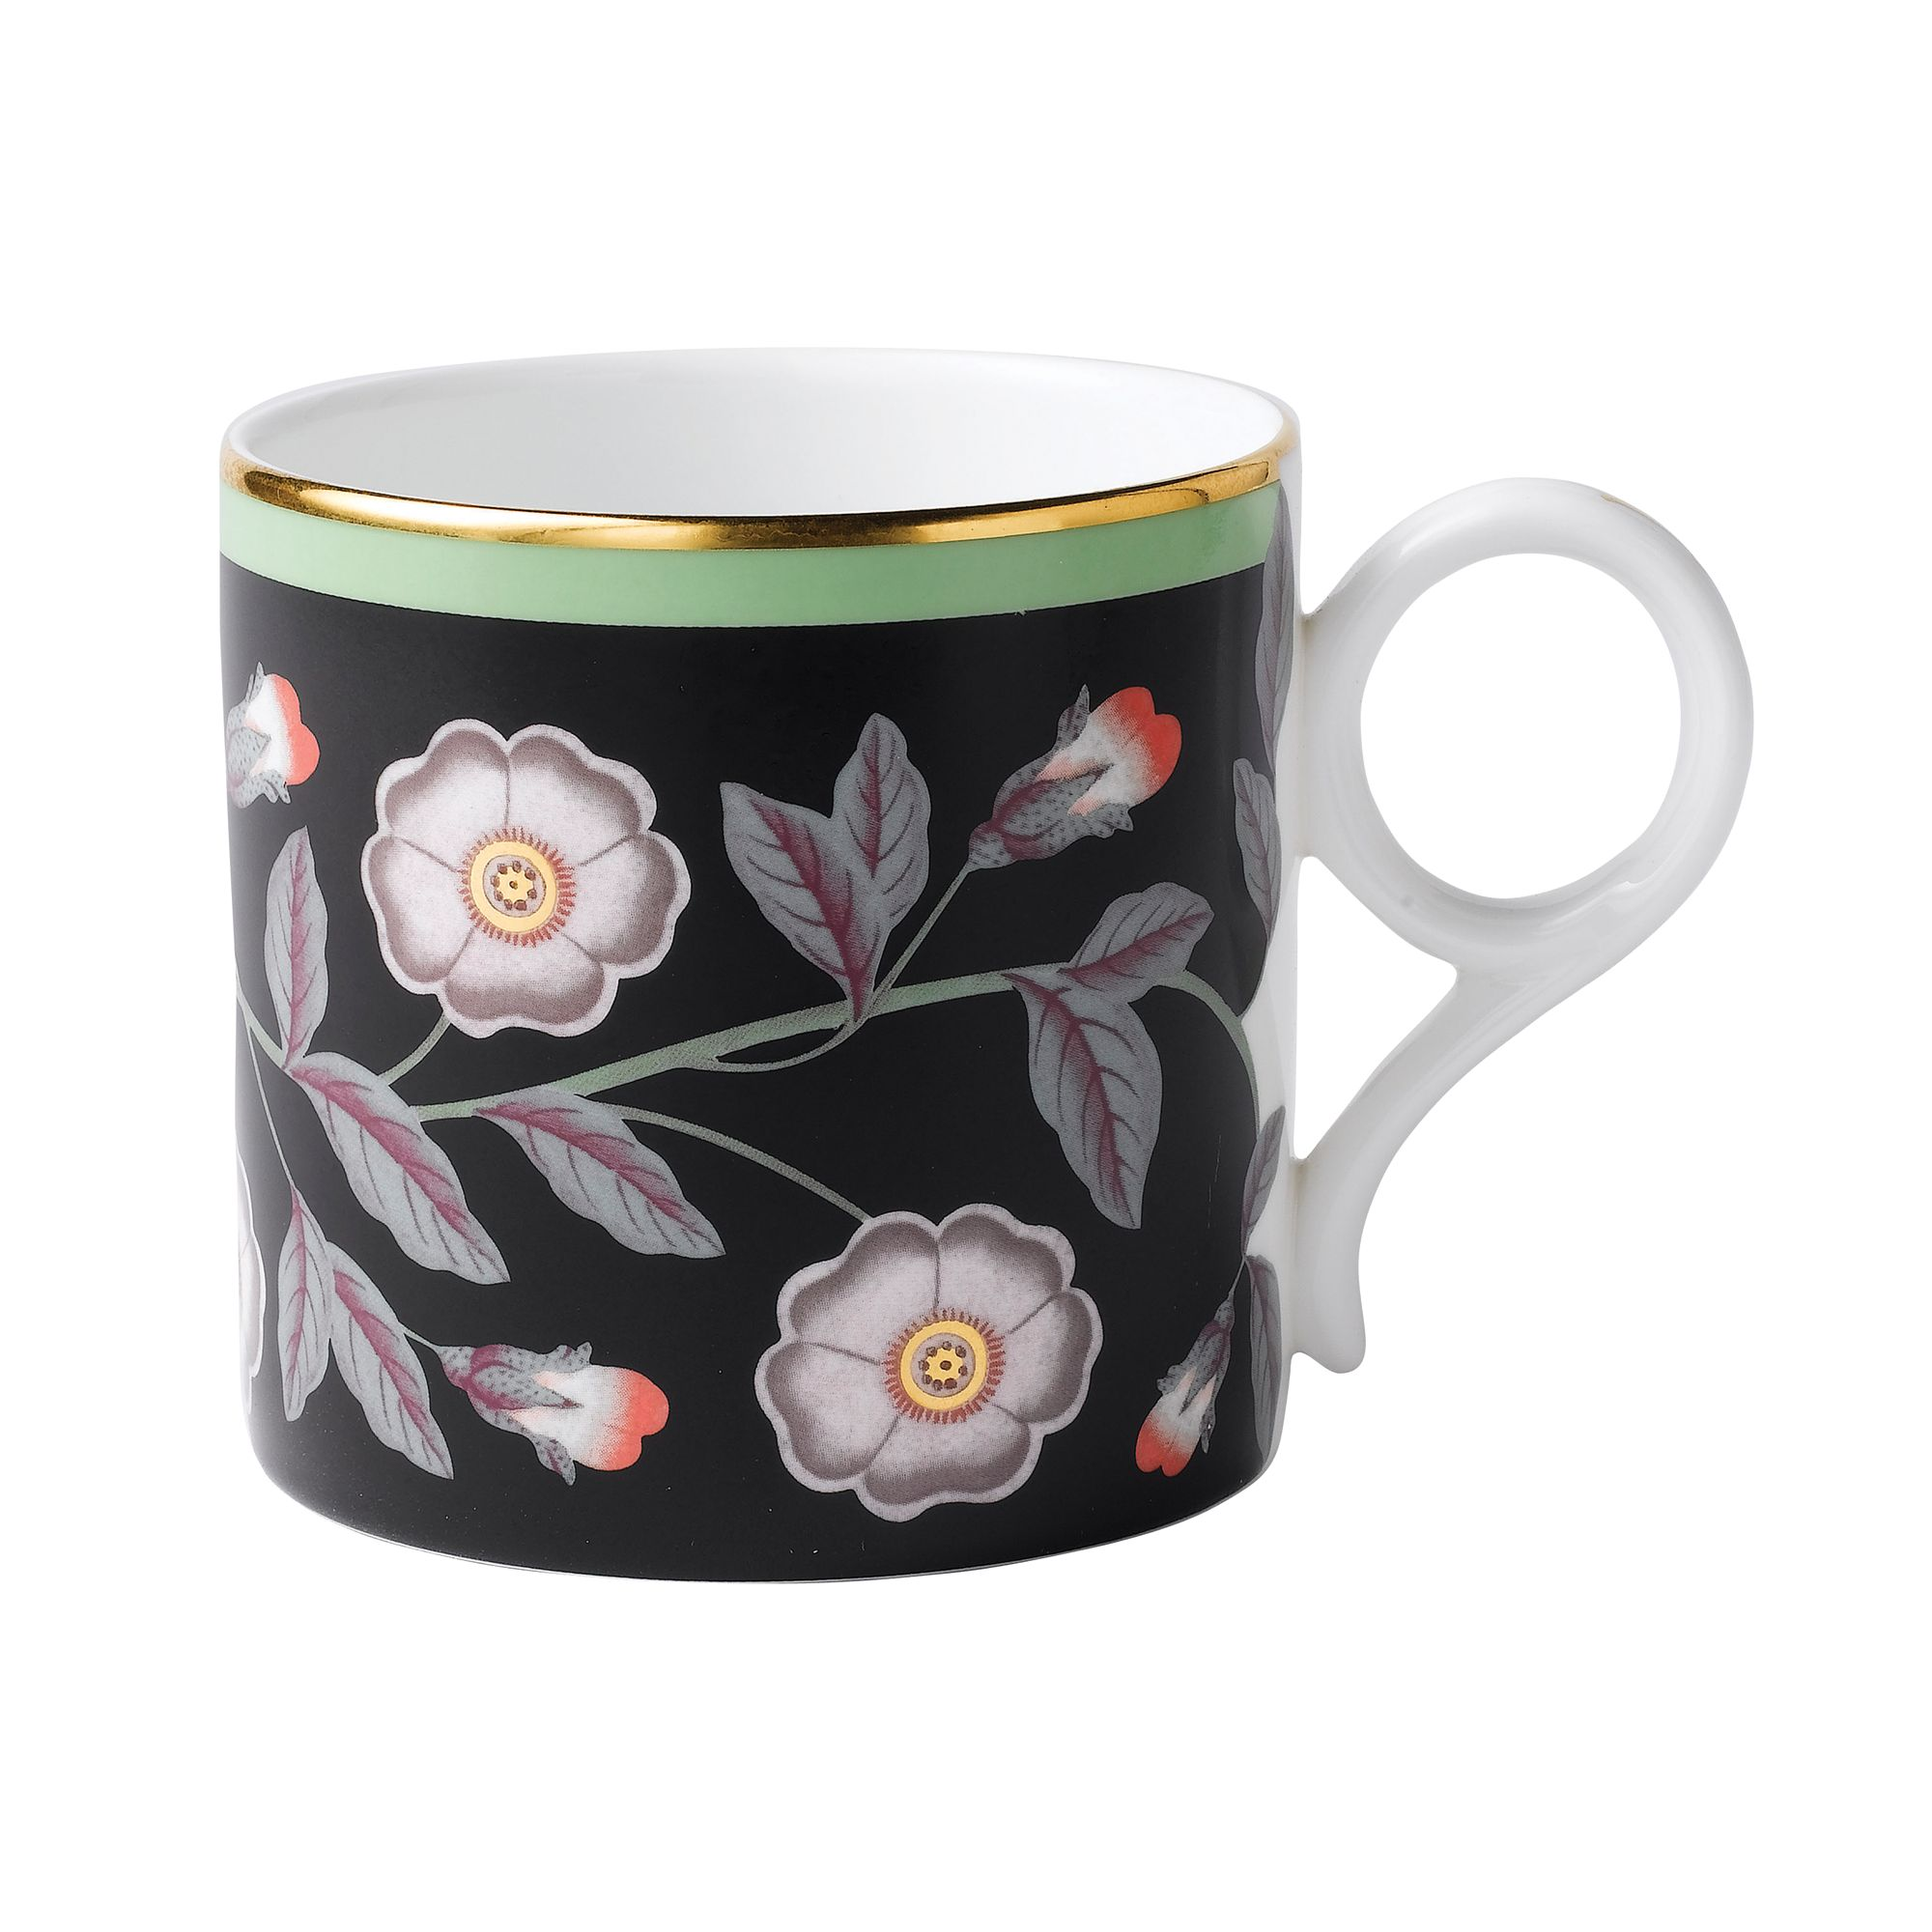 Archive Collection Wild Rose Mug